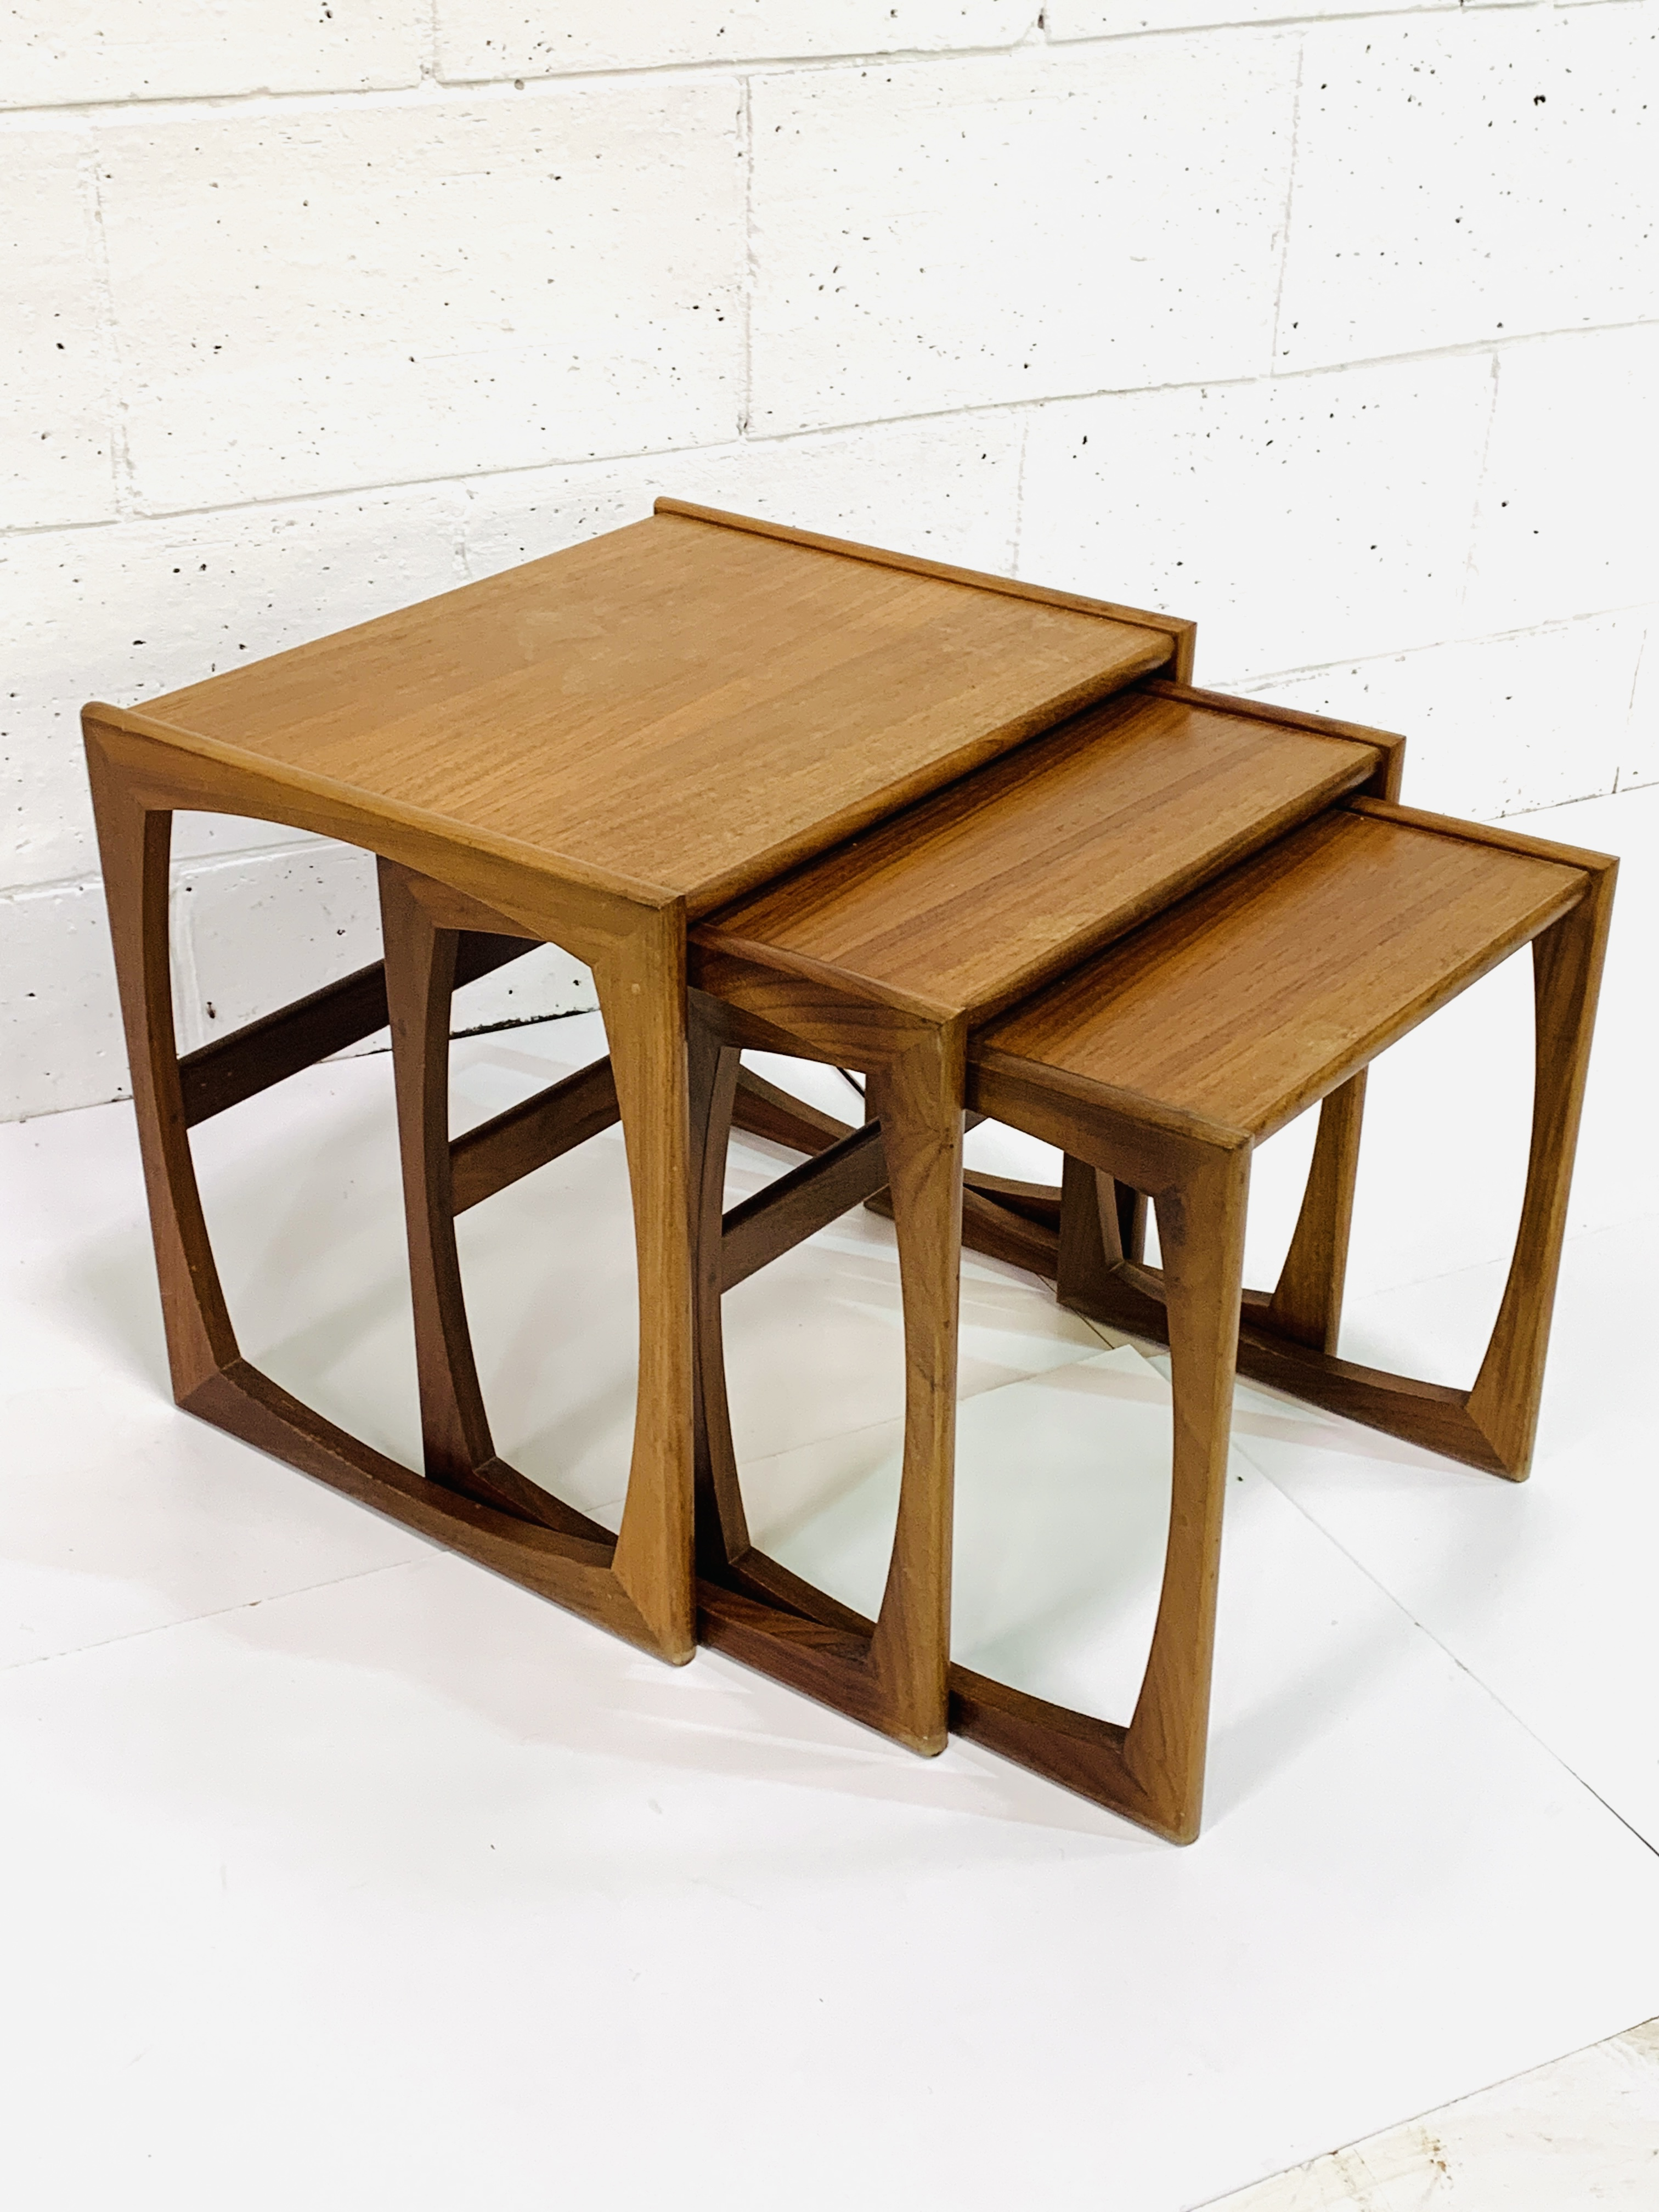 Nest of three teak tables by G-Plan - Image 2 of 3